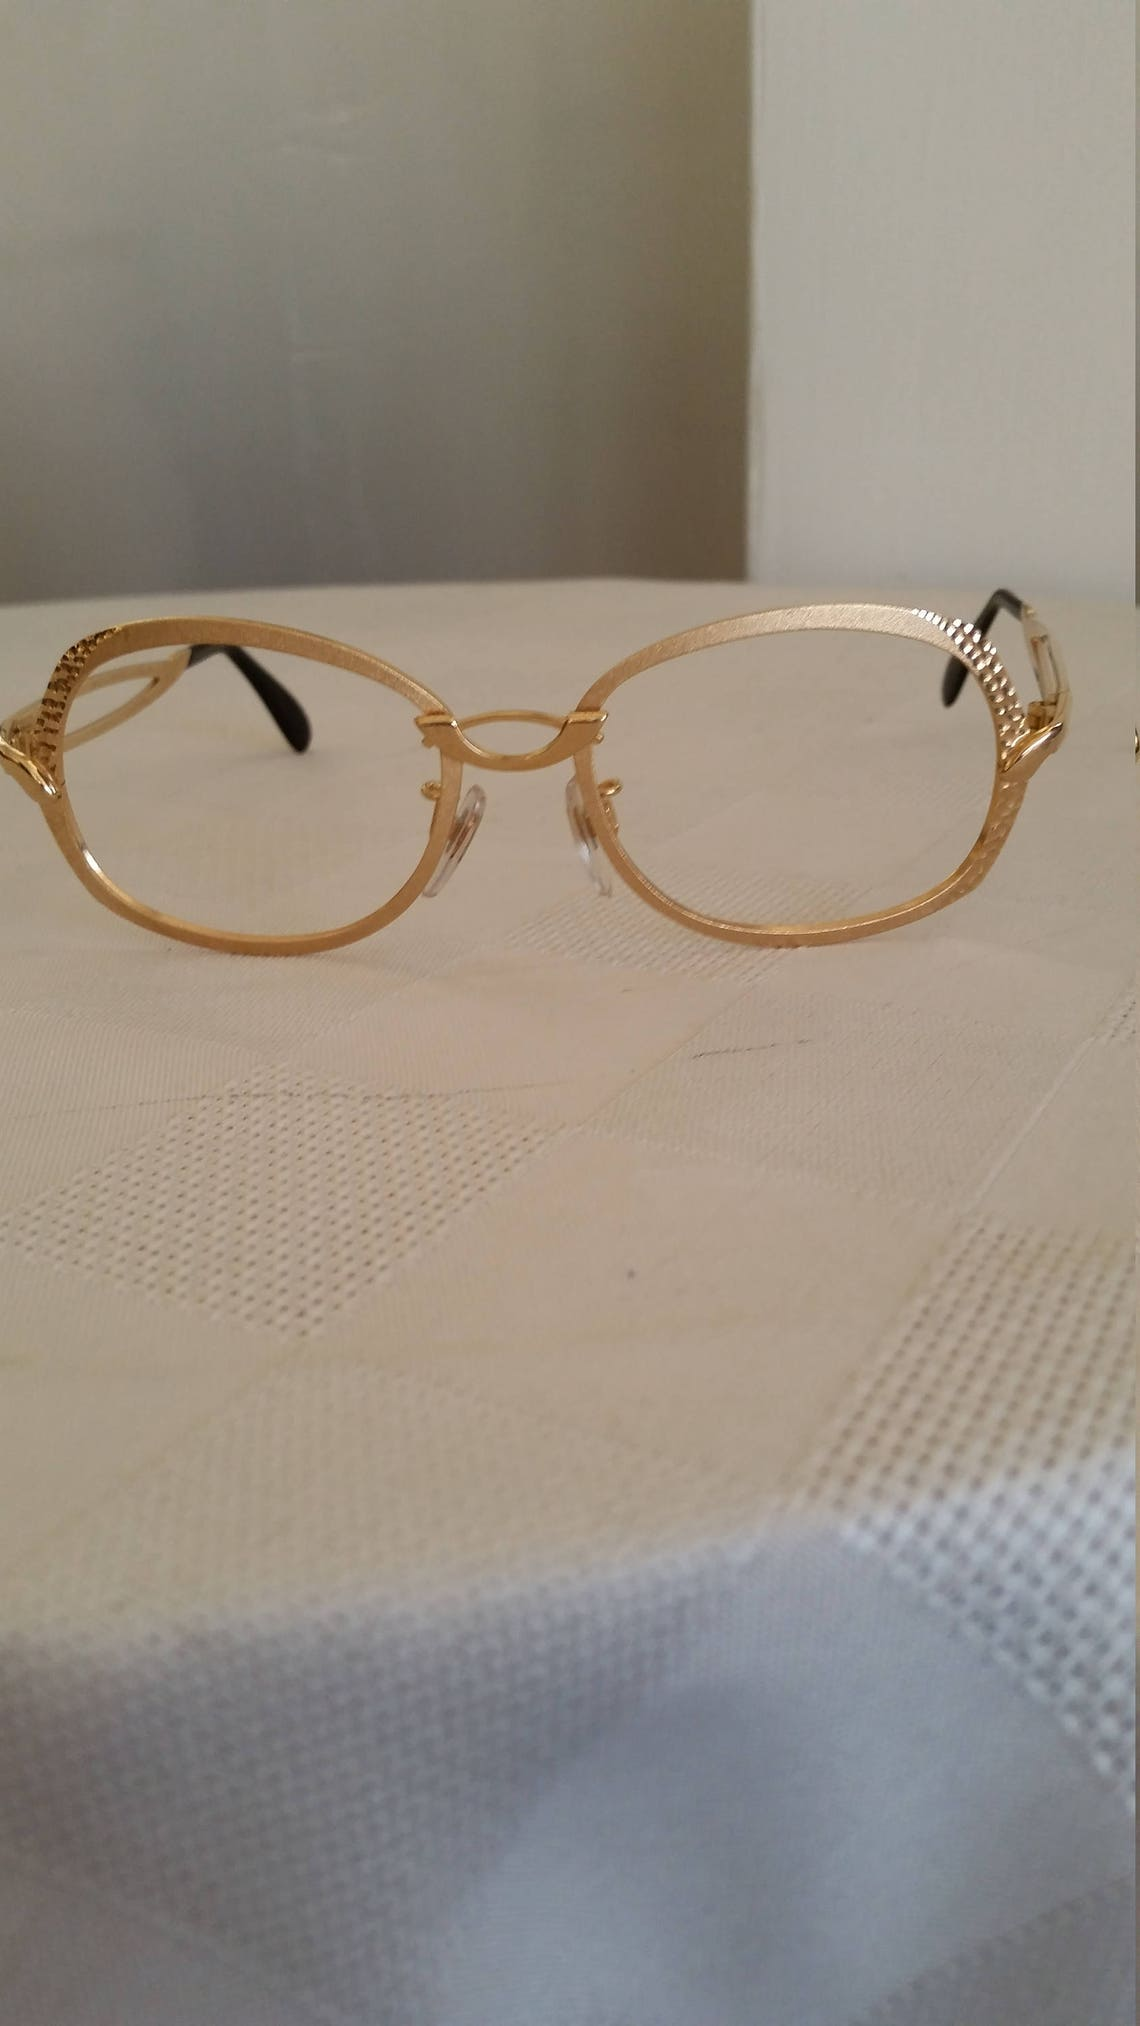 1970s Gold Art Deco Eyeglasses Frame; Beautiful Condition; Rx-able/ Ready for Prescription Lenses; Marked ROPCO W GERMANY; Authentic Vintage